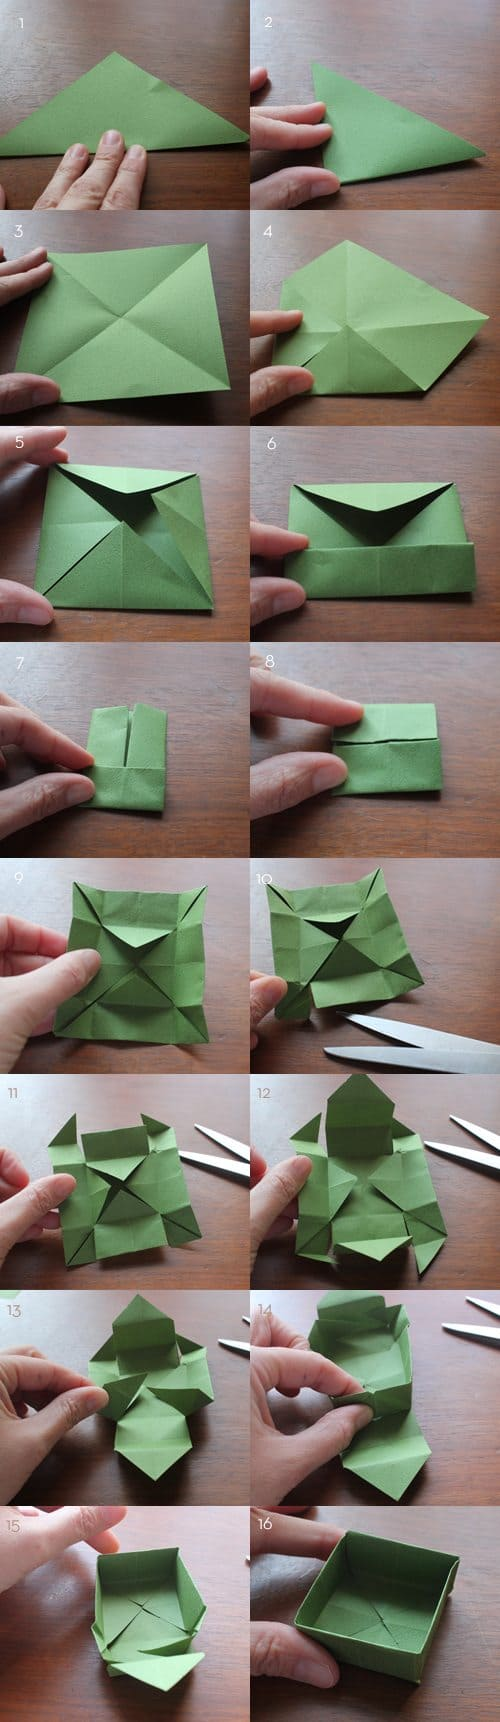 Folding small paper boxes for Advent Calendar Printable